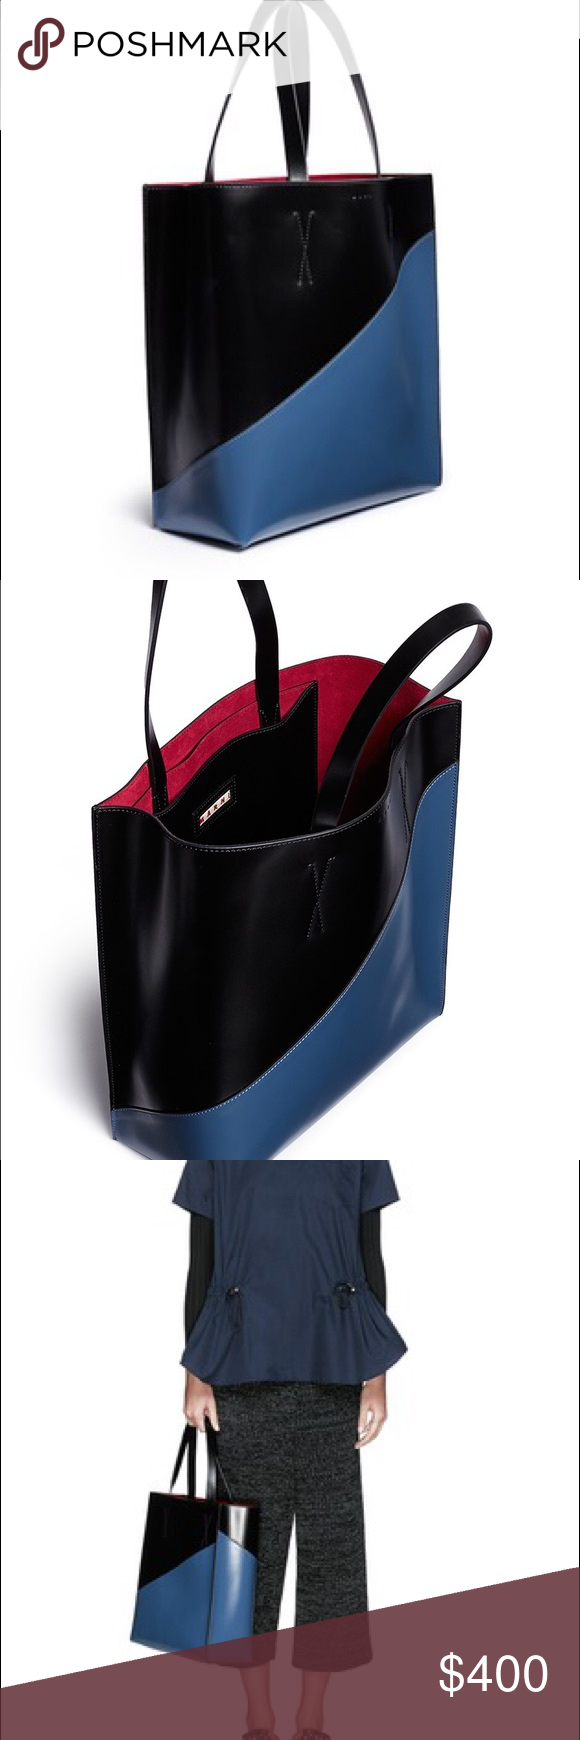 Marni colorblock Museo tote Beautiful colorblock blue/black leather tote in excellent condition. Interior is red suede. Worn a few times, tags included. Pics of actual tote coming soon! 💯 authentic. Marni Bags Totes